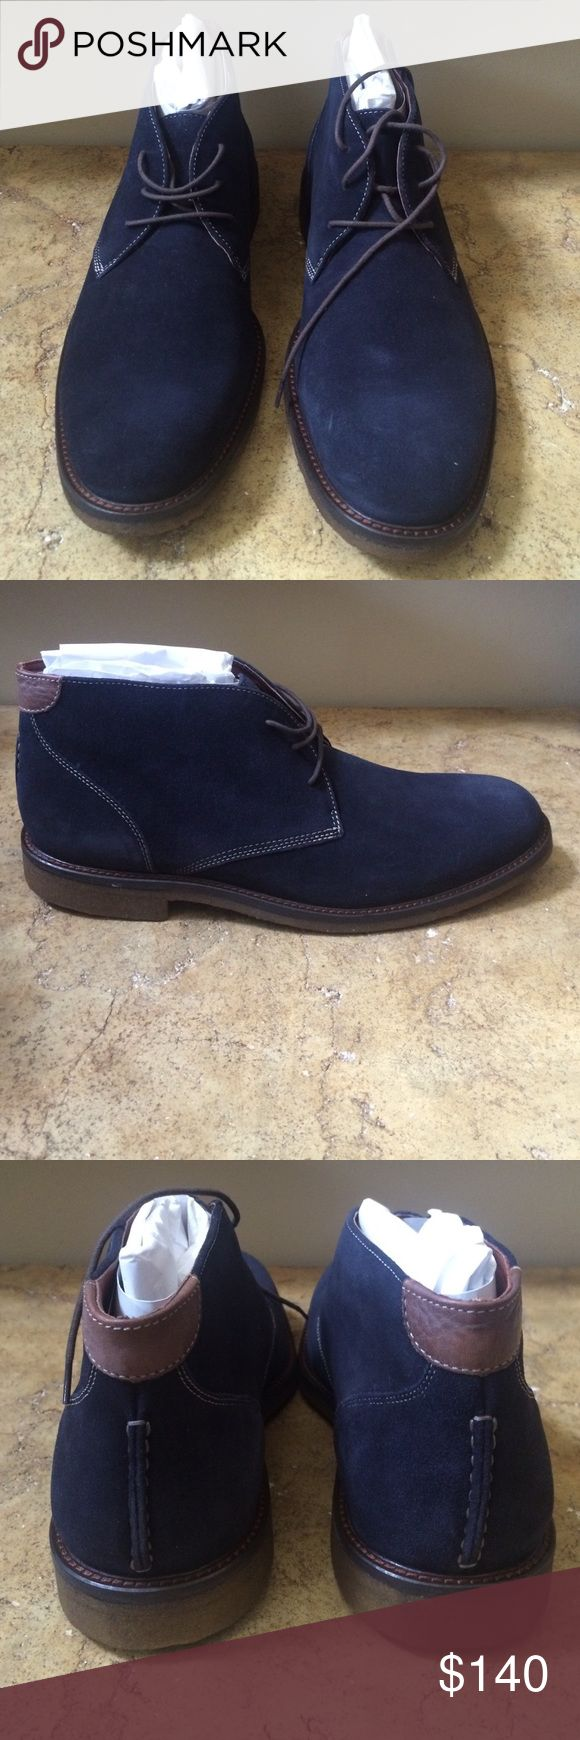 Johnston and Murphy Men's Navy Ankle Boots 11.5 New boots Johnston and murphy Shoes Ankle Boots & Booties